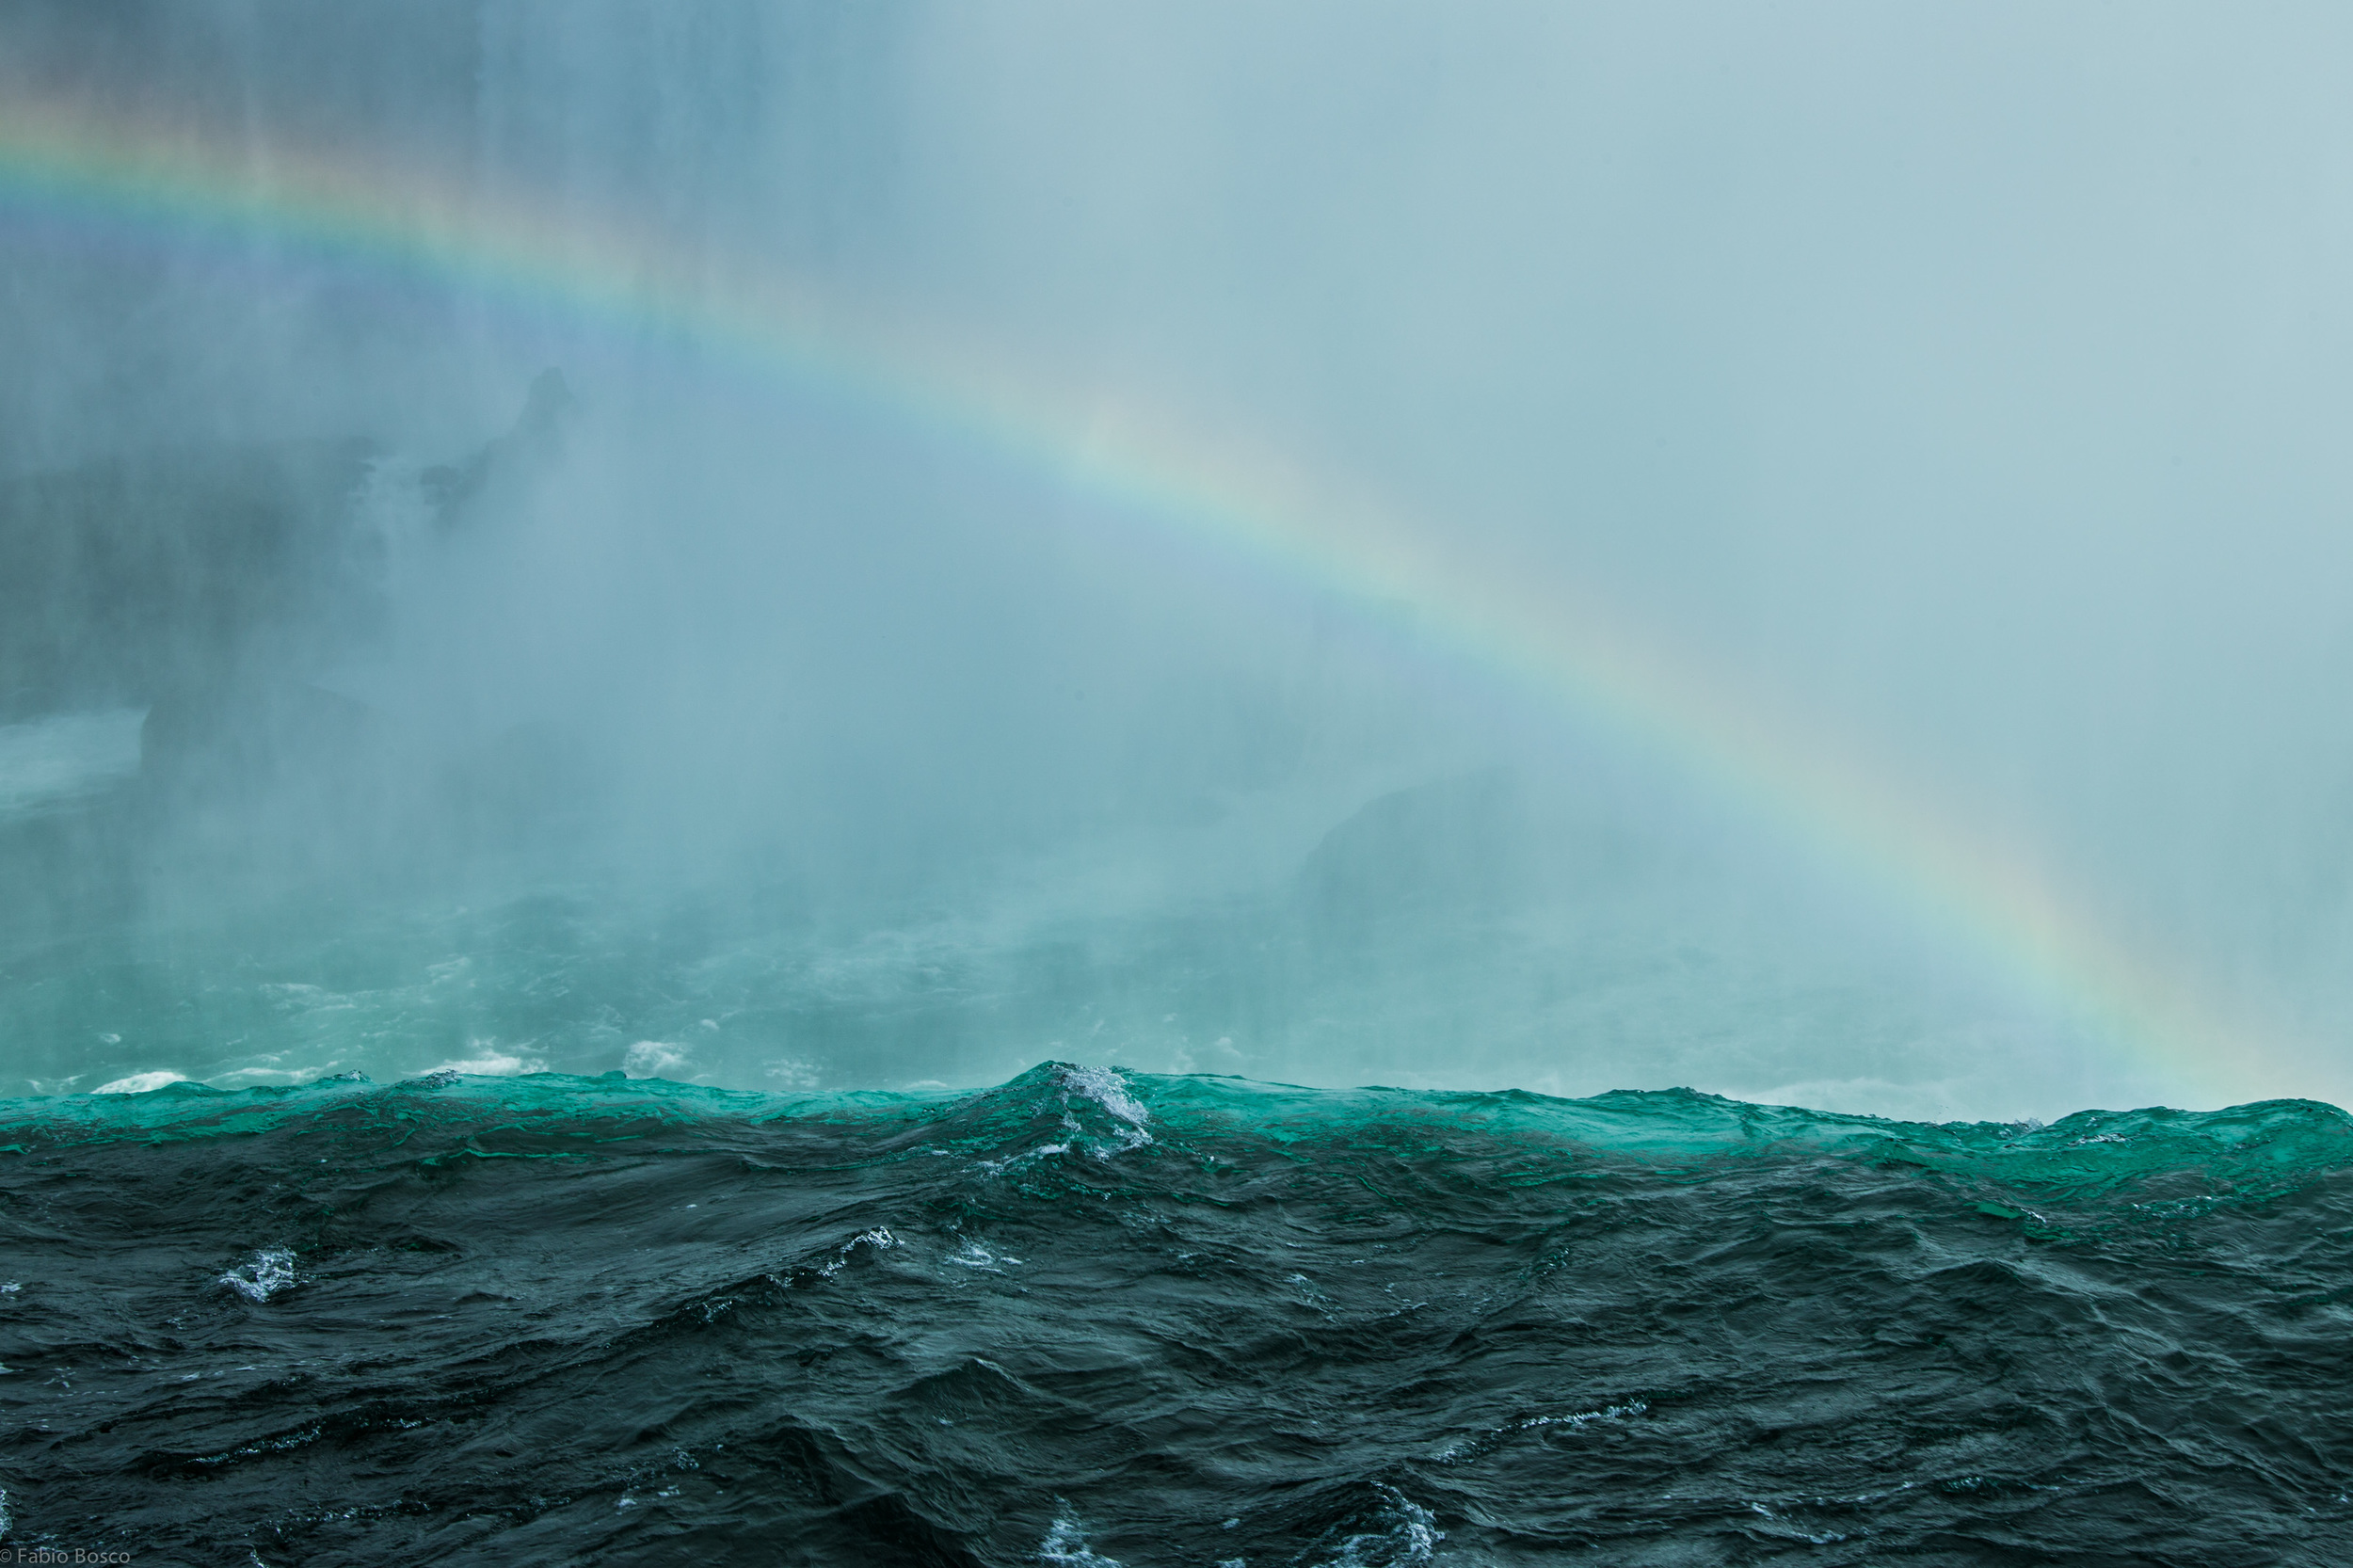 The water and the rainbow